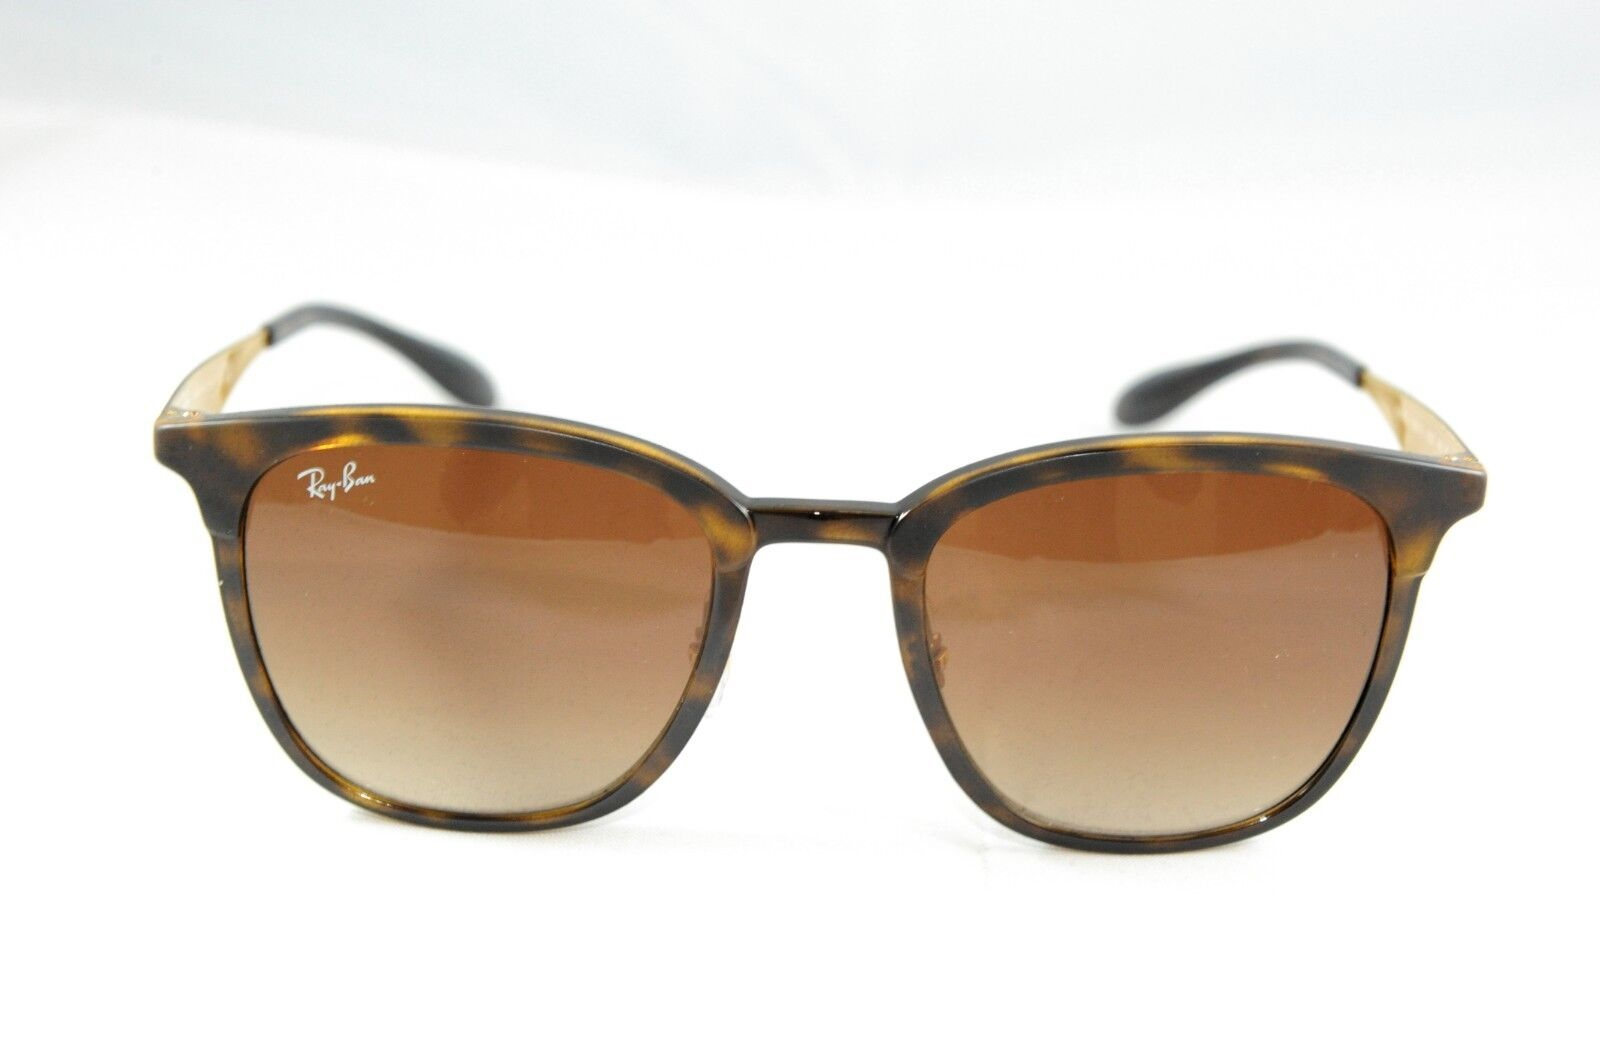 29589b24b37 Ray-Ban Sunglasses Rb4278 628313 Tortoise Gold Brown Gradient for sale  online